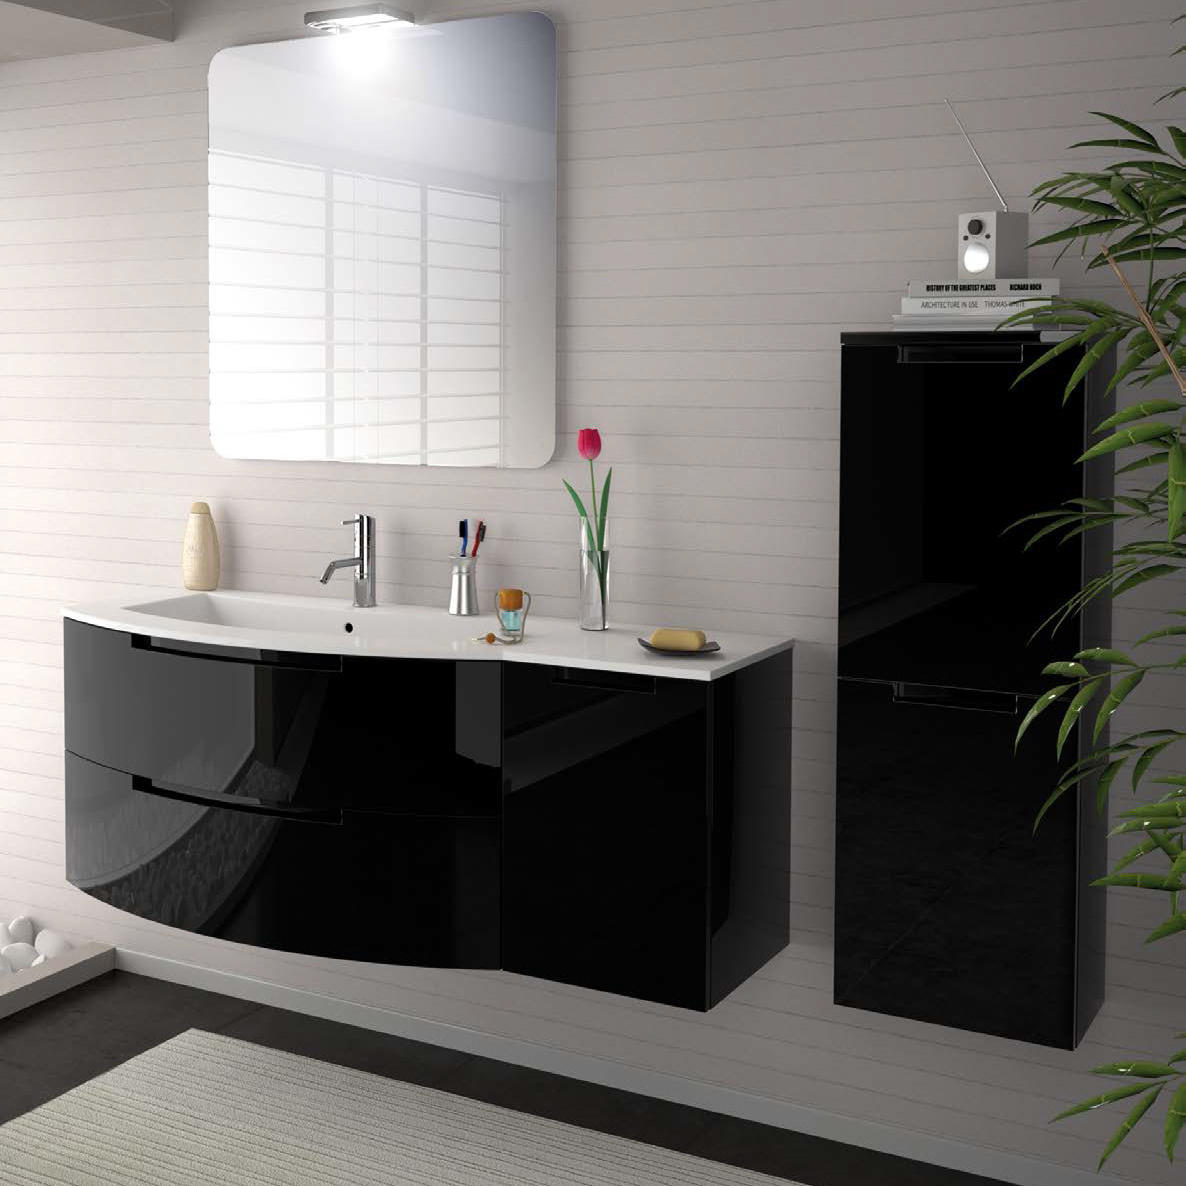 best ideas the style for bathroom sasg black vanities and painting at image concept painted vanity a cabinet